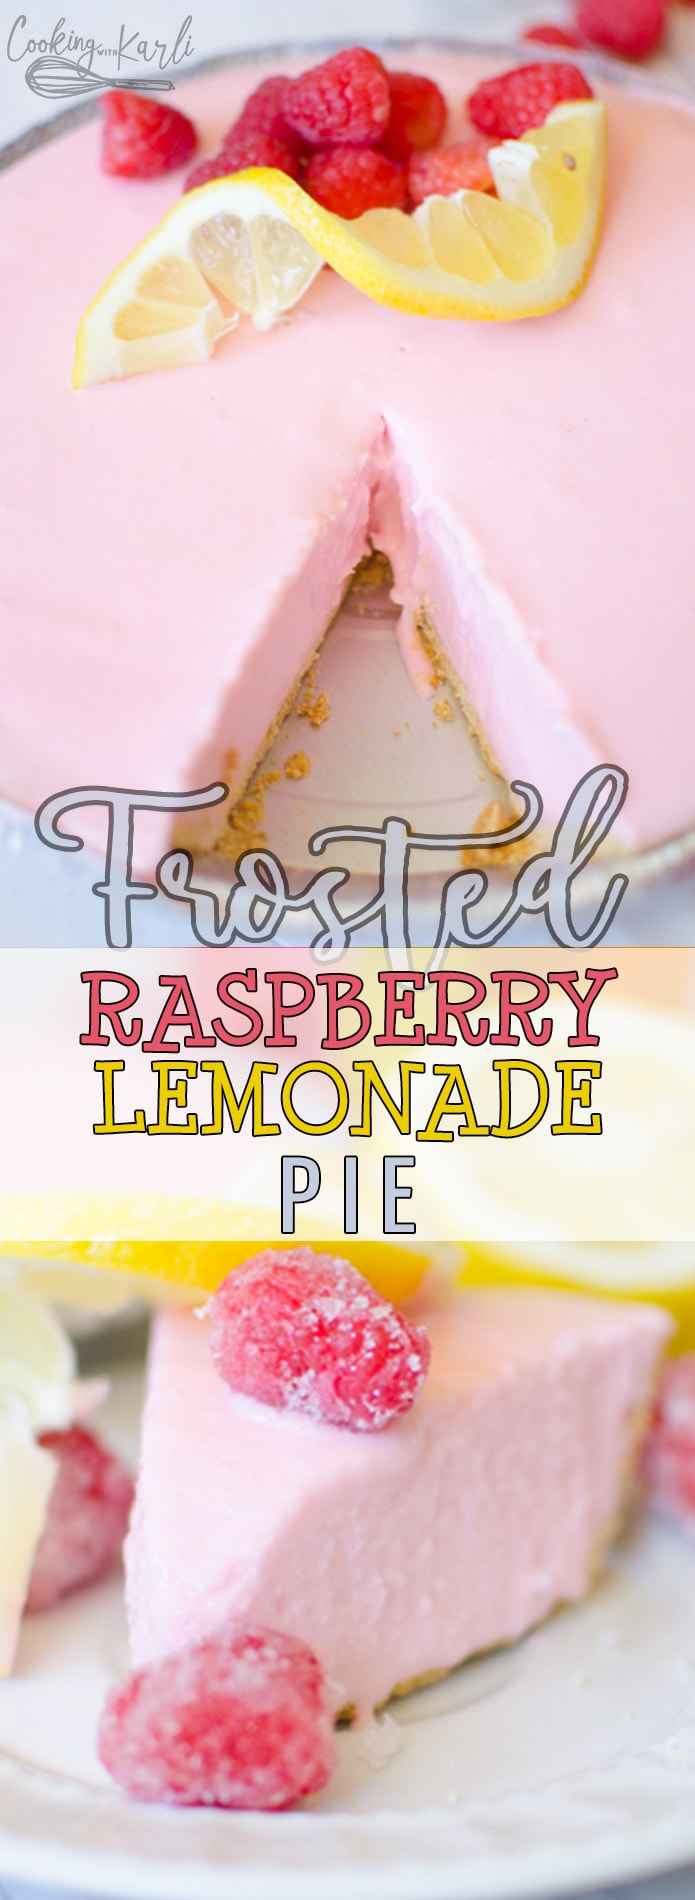 Frosted Raspberry Lemonade Pie is a simple freezer pie made from 3 ingredients that will surprise your taste buds! Vanilla Ice Cream, Raspberry Lemonade Concentrate and a Graham Cracker Crust is all you'll need! This pie is perfect for summer with it's bright flavors! |Cooking with Karli| #raspberry #lemonade #frosted #pie #freezerpie #summer